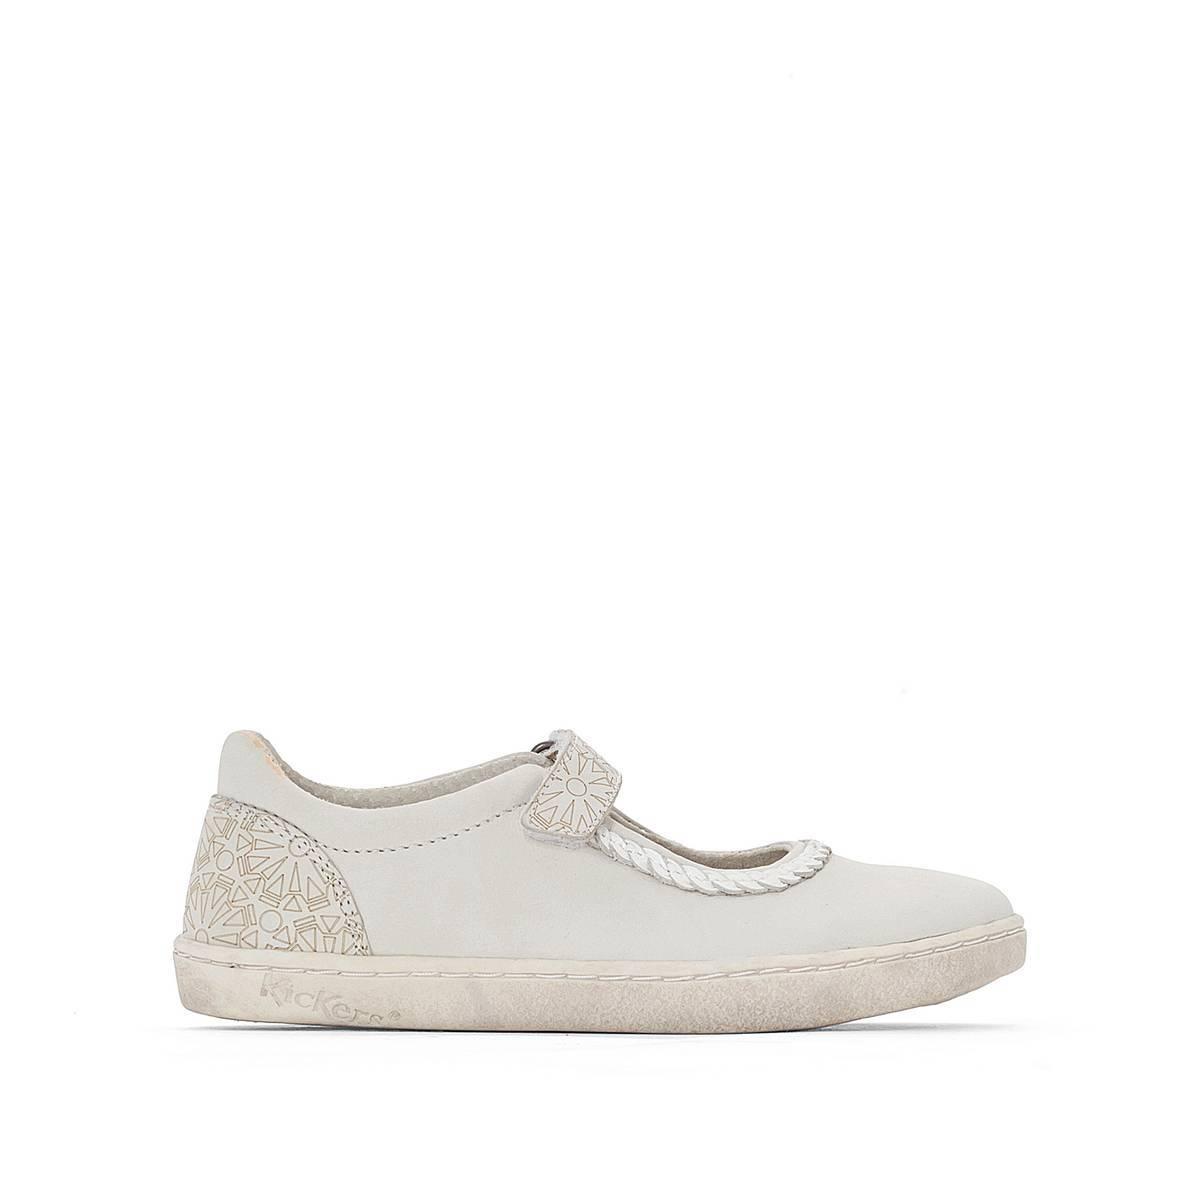 KICKERS Zapatos tipo babies Lydie blanco